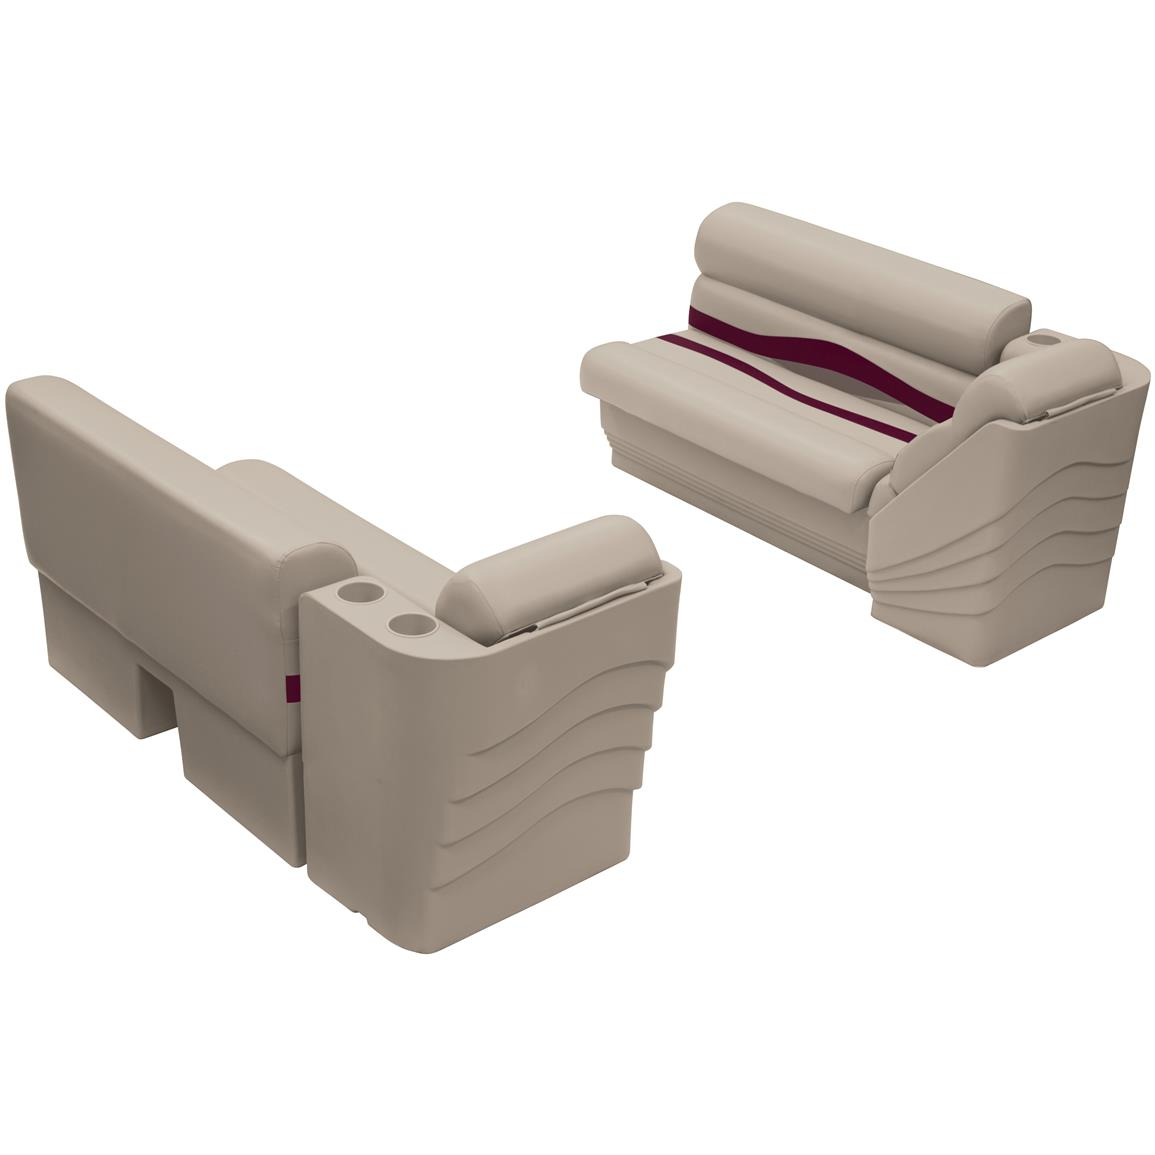 Wise® Premier Pontoon 45 inch Bench and Lean Back Set, Color F: Platinum Punch / Wineberry / Manatee